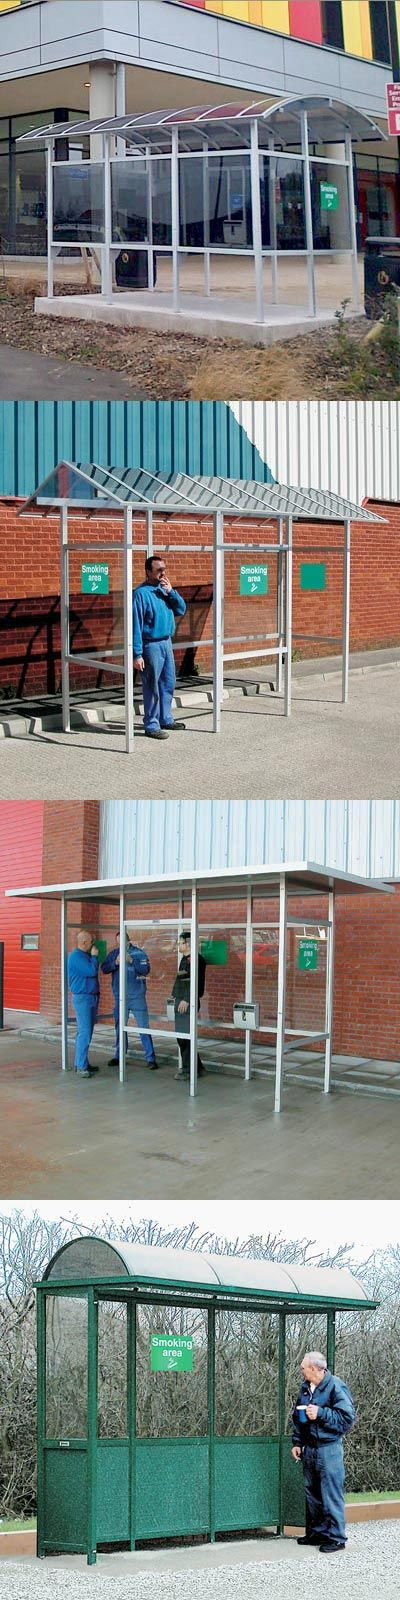 Carleton 50 Smoking / E-cigarette Shelters can be supplied with curved, pitched or flat roofs, or as a cantilever-style shelter. #Shelter #SmokingShelter #GlasdonUK #EcigaretteShelter